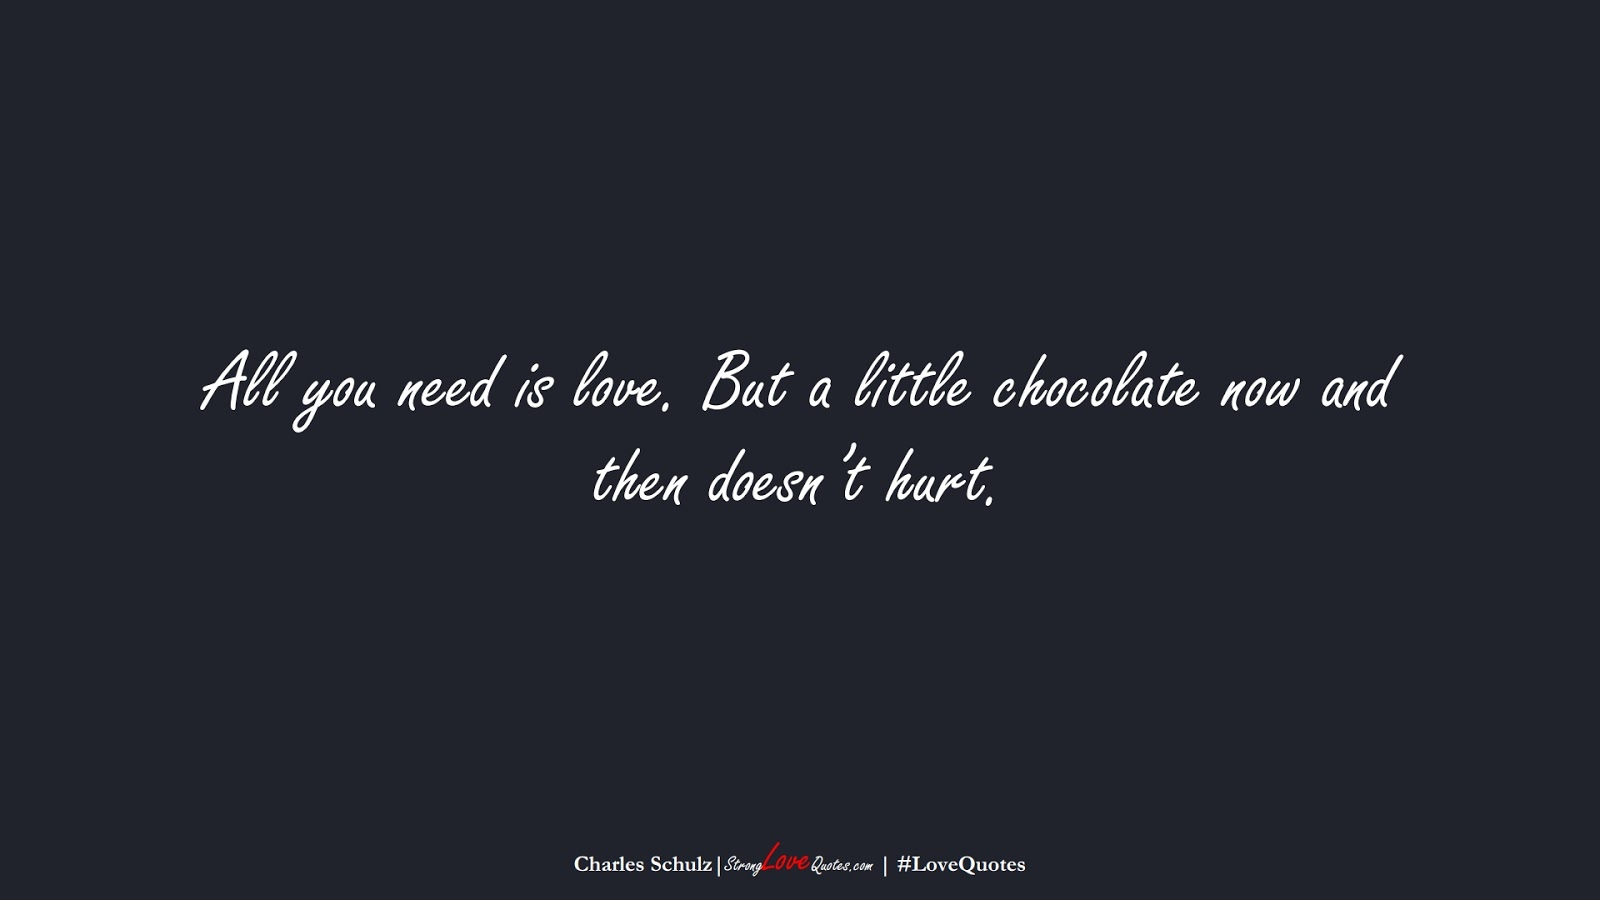 All you need is love. But a little chocolate now and then doesn't hurt. (Charles Schulz);  #LoveQuotes